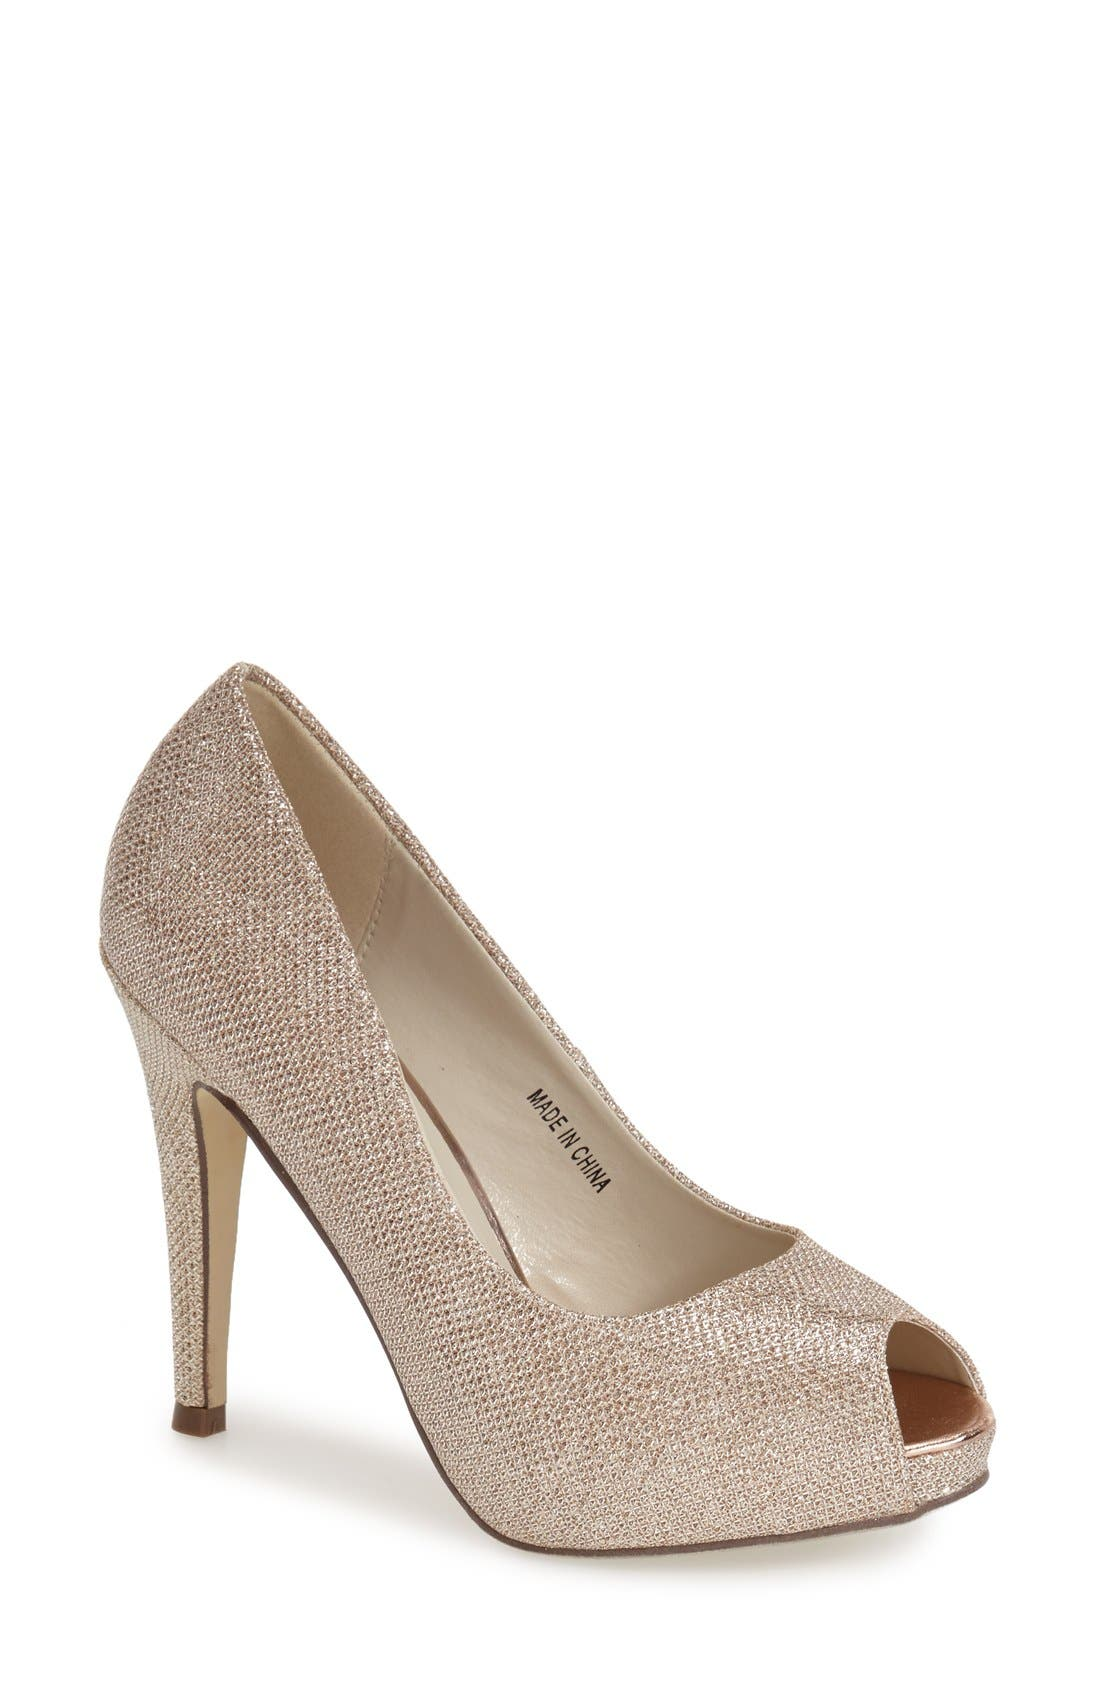 Alternate Image 1 Selected - pink paradox london 'Yummy' Glitter Peep Toe Pump (Women)